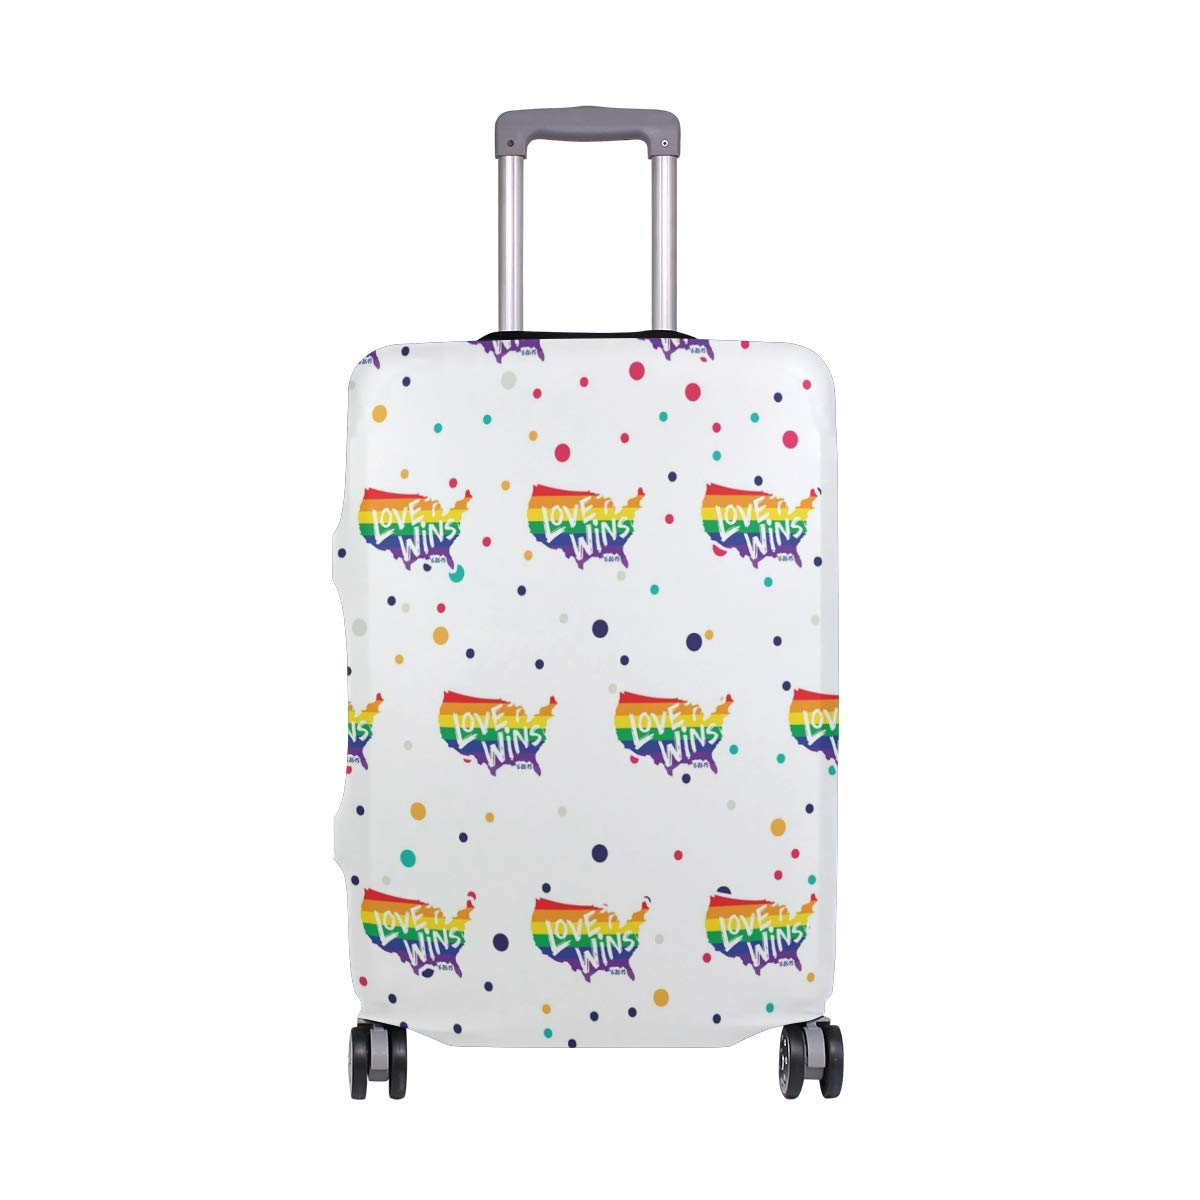 Love Wins Lgbt Travel Luggage Cover - Suitcase Protector HLive Spandex Dust Proof Covers with Zipper, Fits 18-32 inch